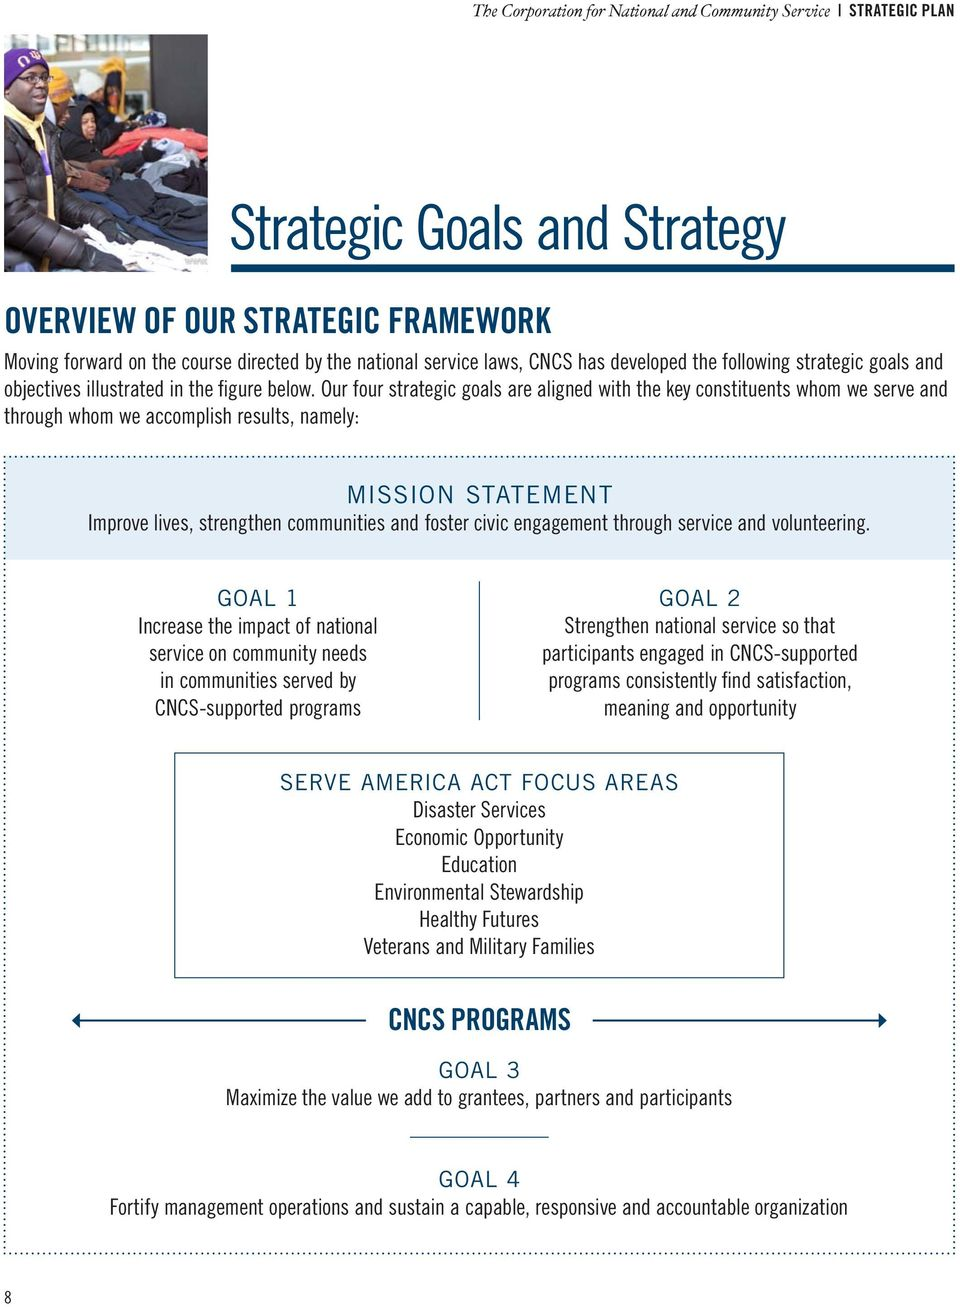 Our four strategic goals are aligned with the key constituents whom we serve and through whom we accomplish results, namely: Mission Statement Improve lives, strengthen communities and foster civic